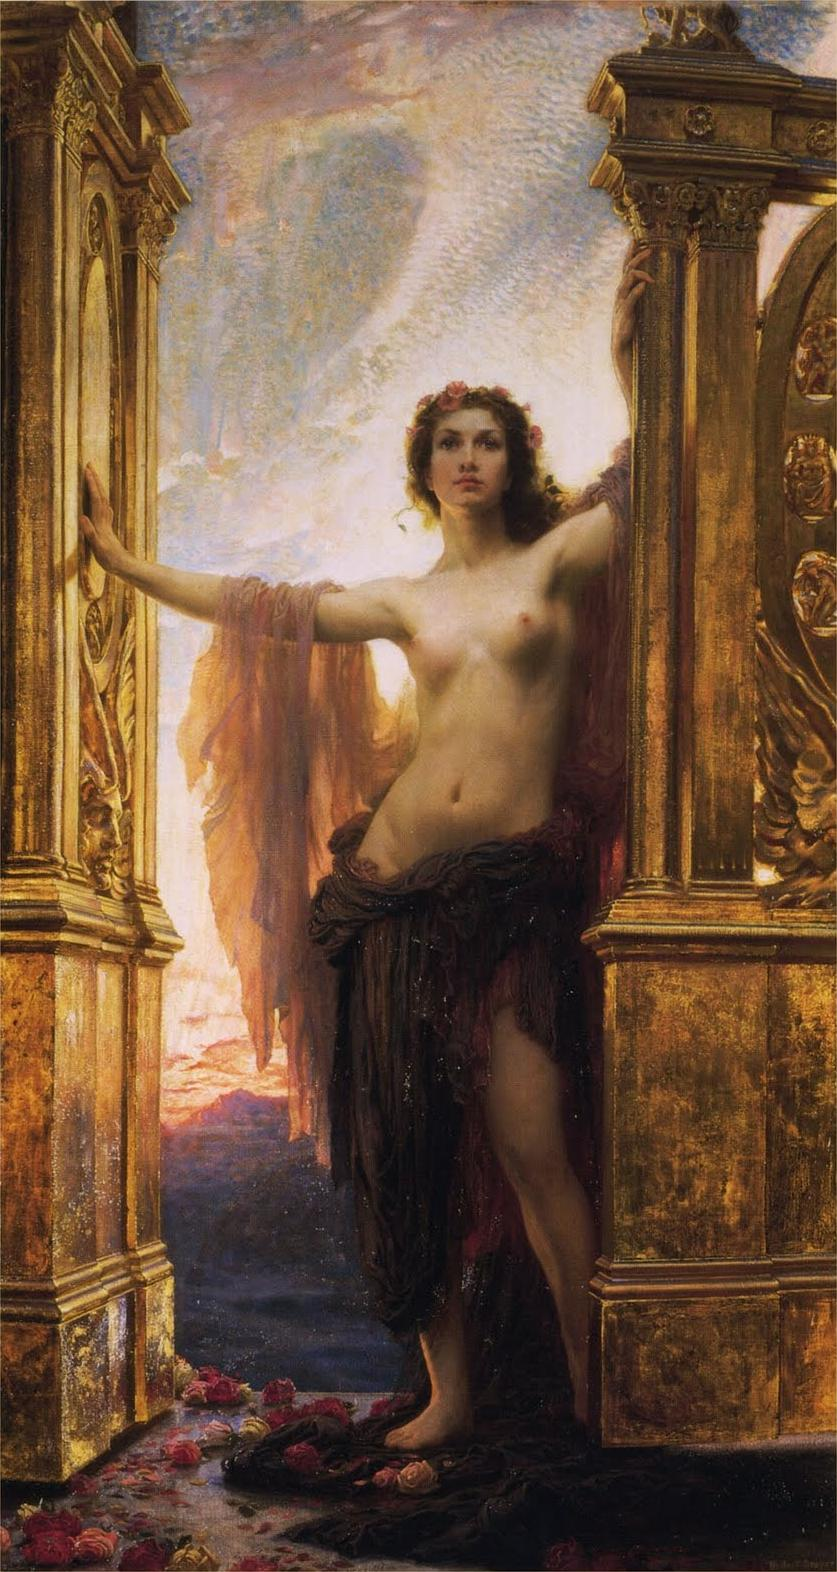 http://upload.wikimedia.org/wikipedia/commons/6/6f/Herbert_James_Draper%2C_The_Gates_of_Dawn%2C_1900.jpg